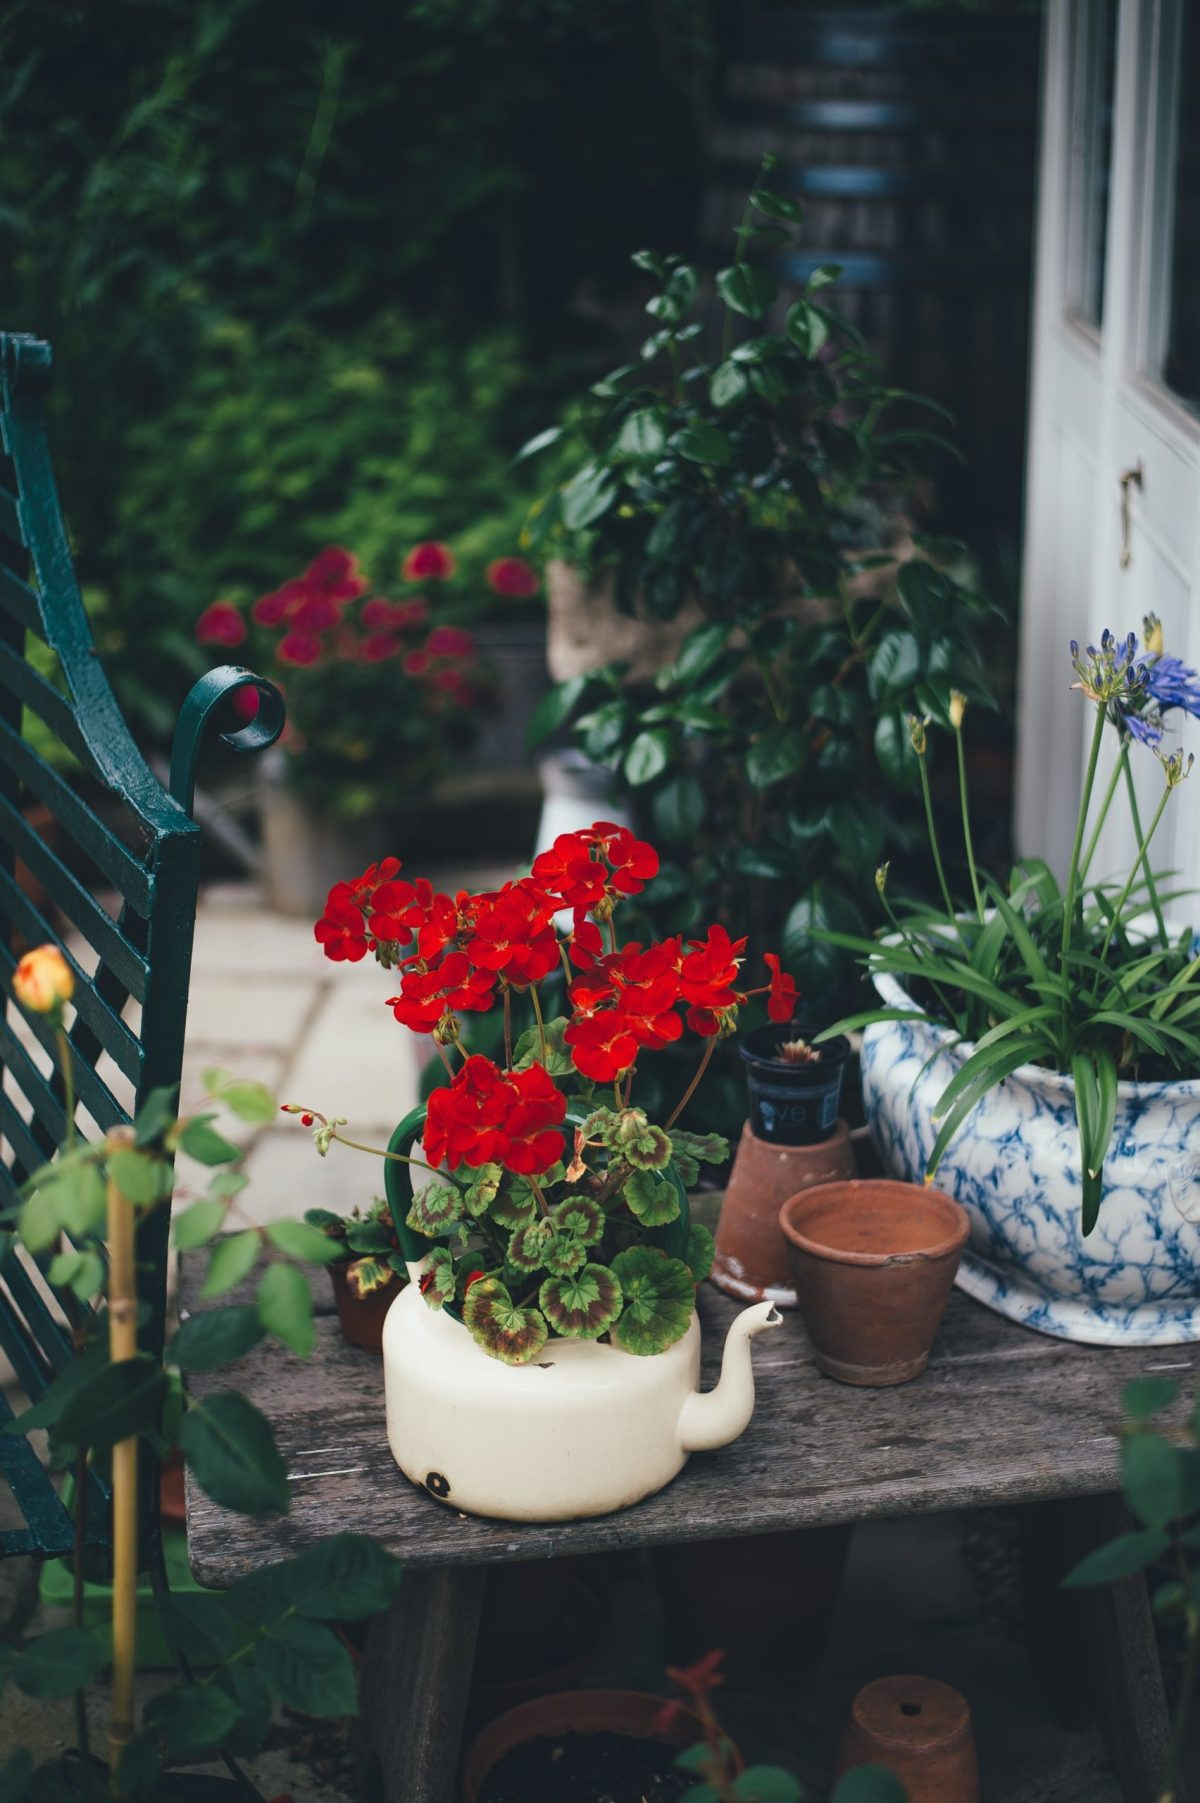 Four Reasons Why You Should Garden After A Breakup